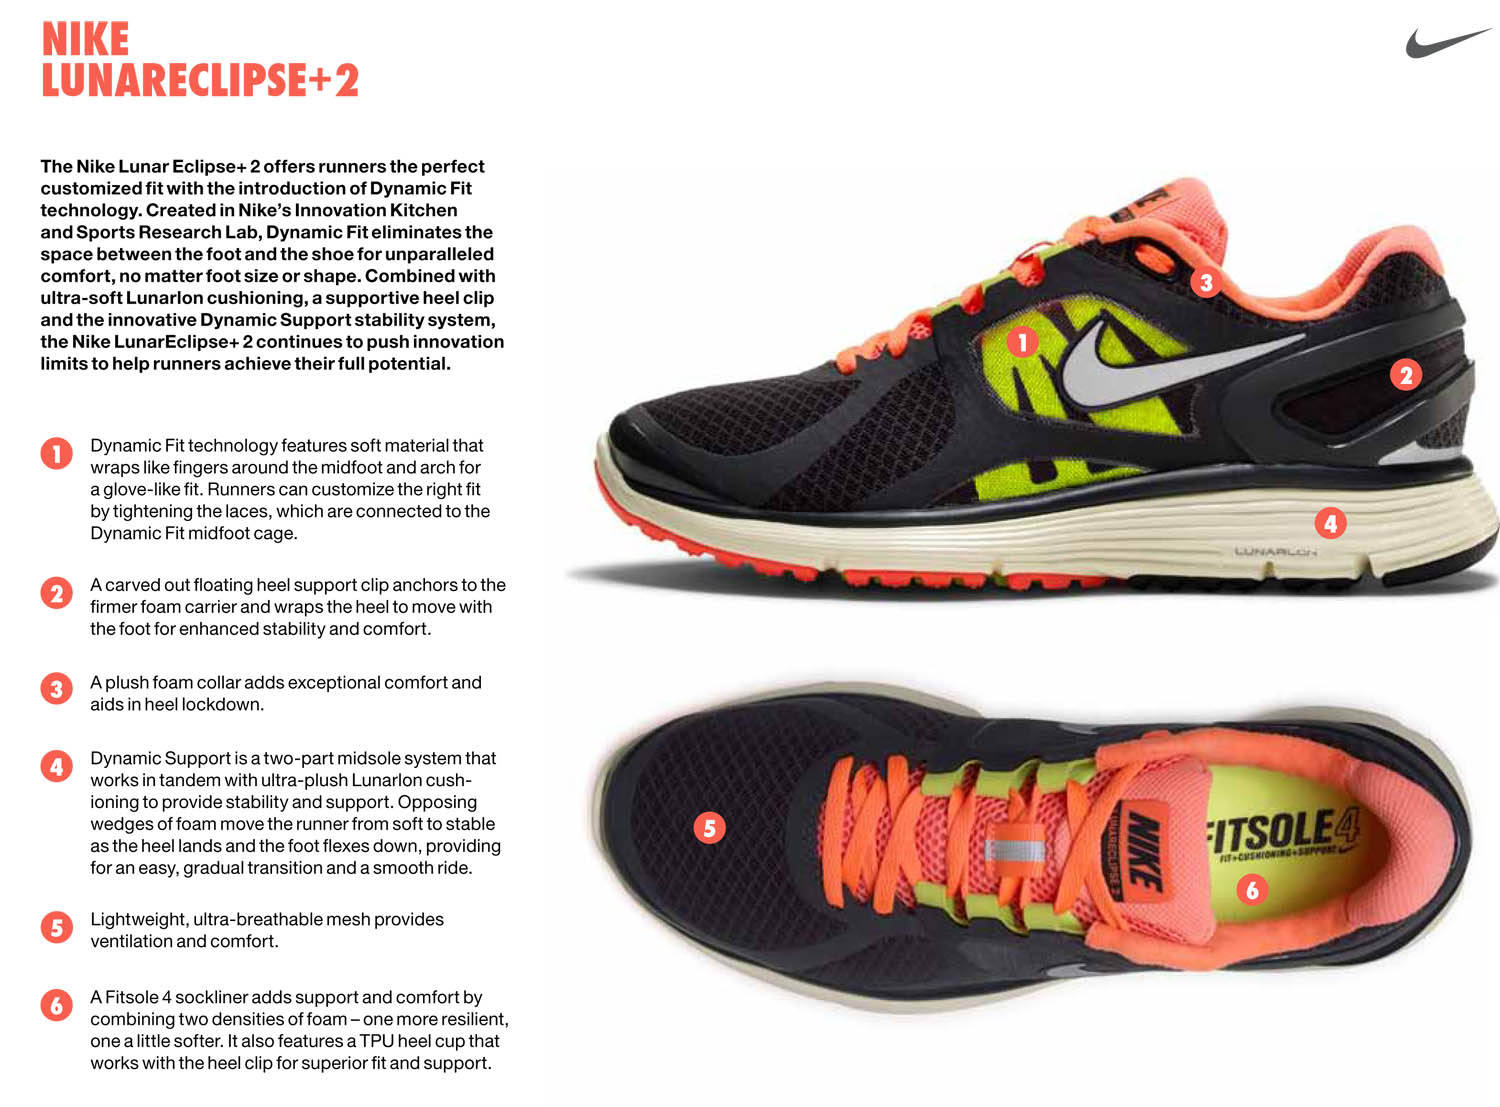 Nike Running Introduces Dynamic Fit with the Nike Lunareclipse+ 2 Tech Sheet